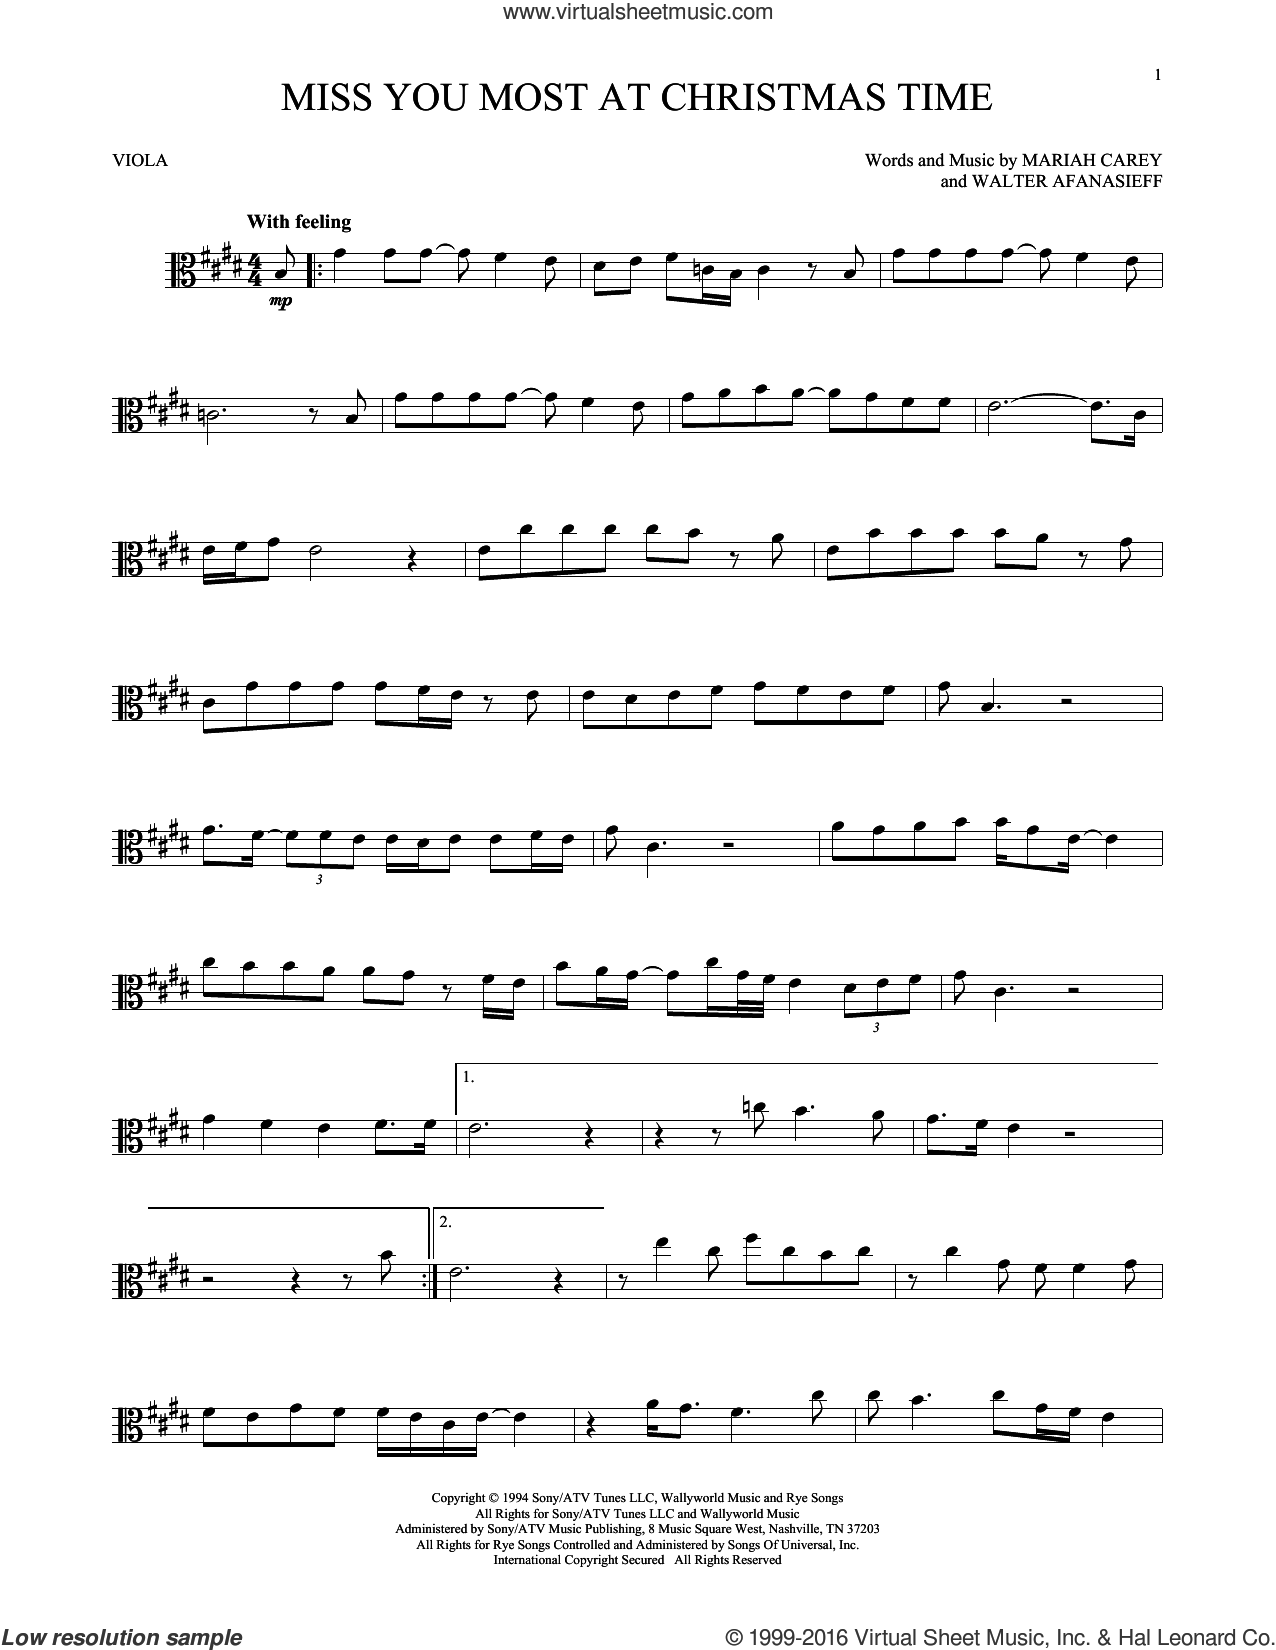 Miss You Most At Christmas Time sheet music for viola solo by Mariah Carey and Walter Afanasieff, intermediate. Score Image Preview.